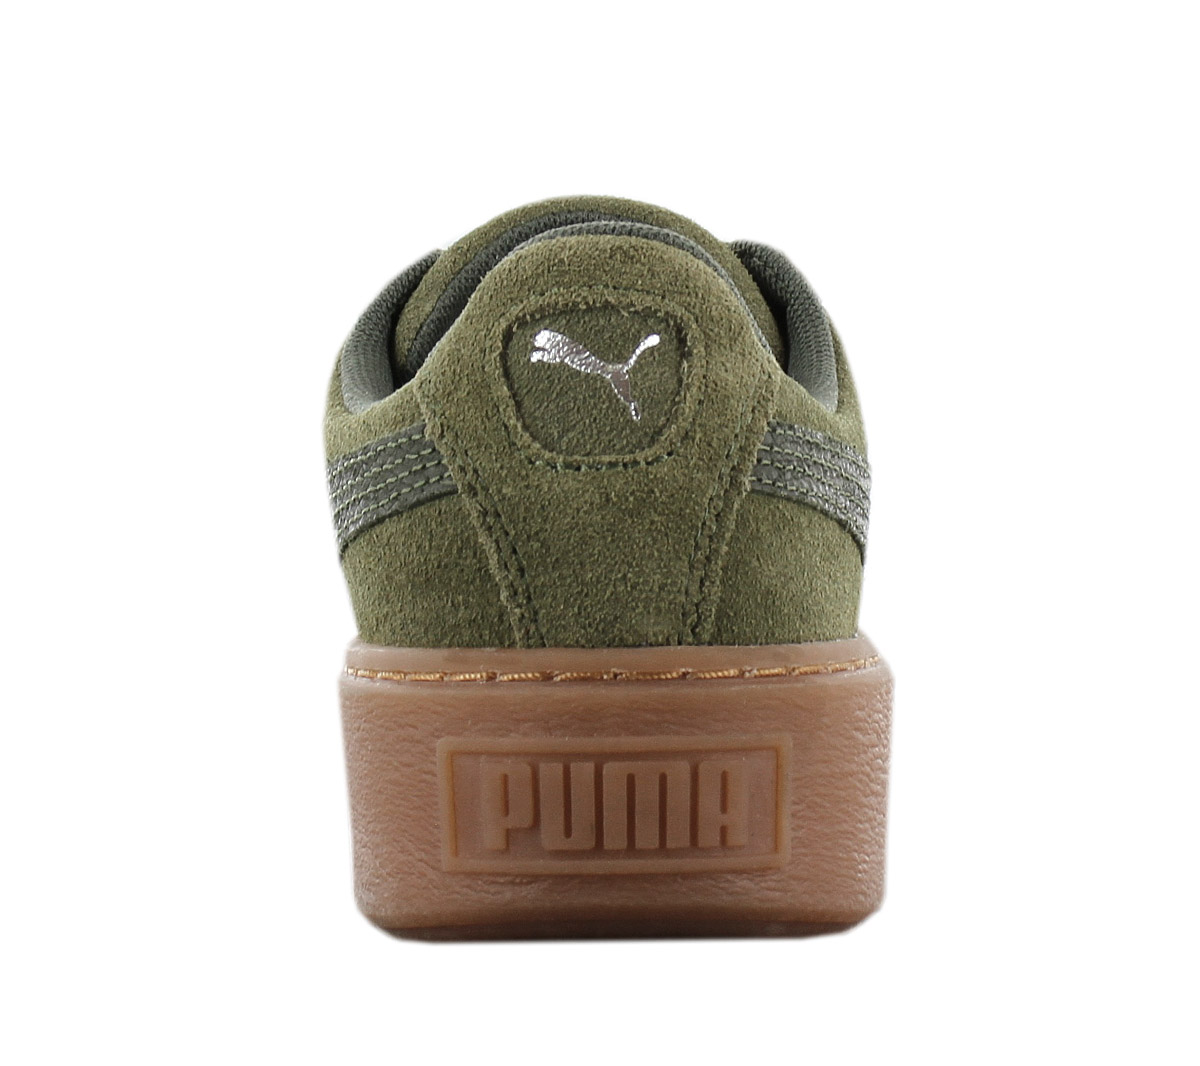 51e176498a95 Puma Suede Platform Animal Women s Sneakers Leather Shoes 365109-03 ...